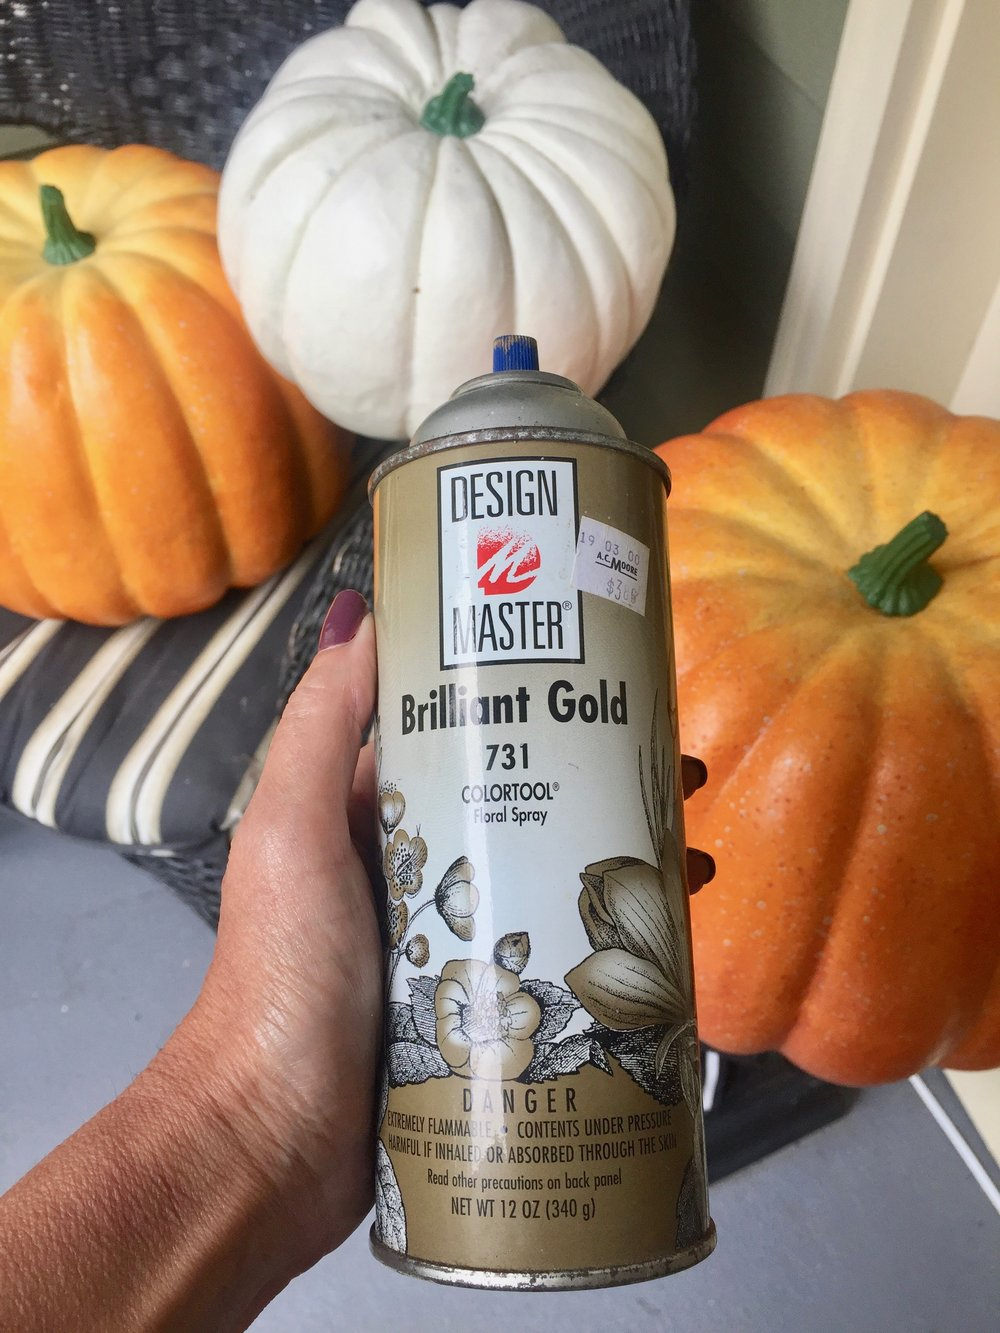 Design master paint for pumpkins